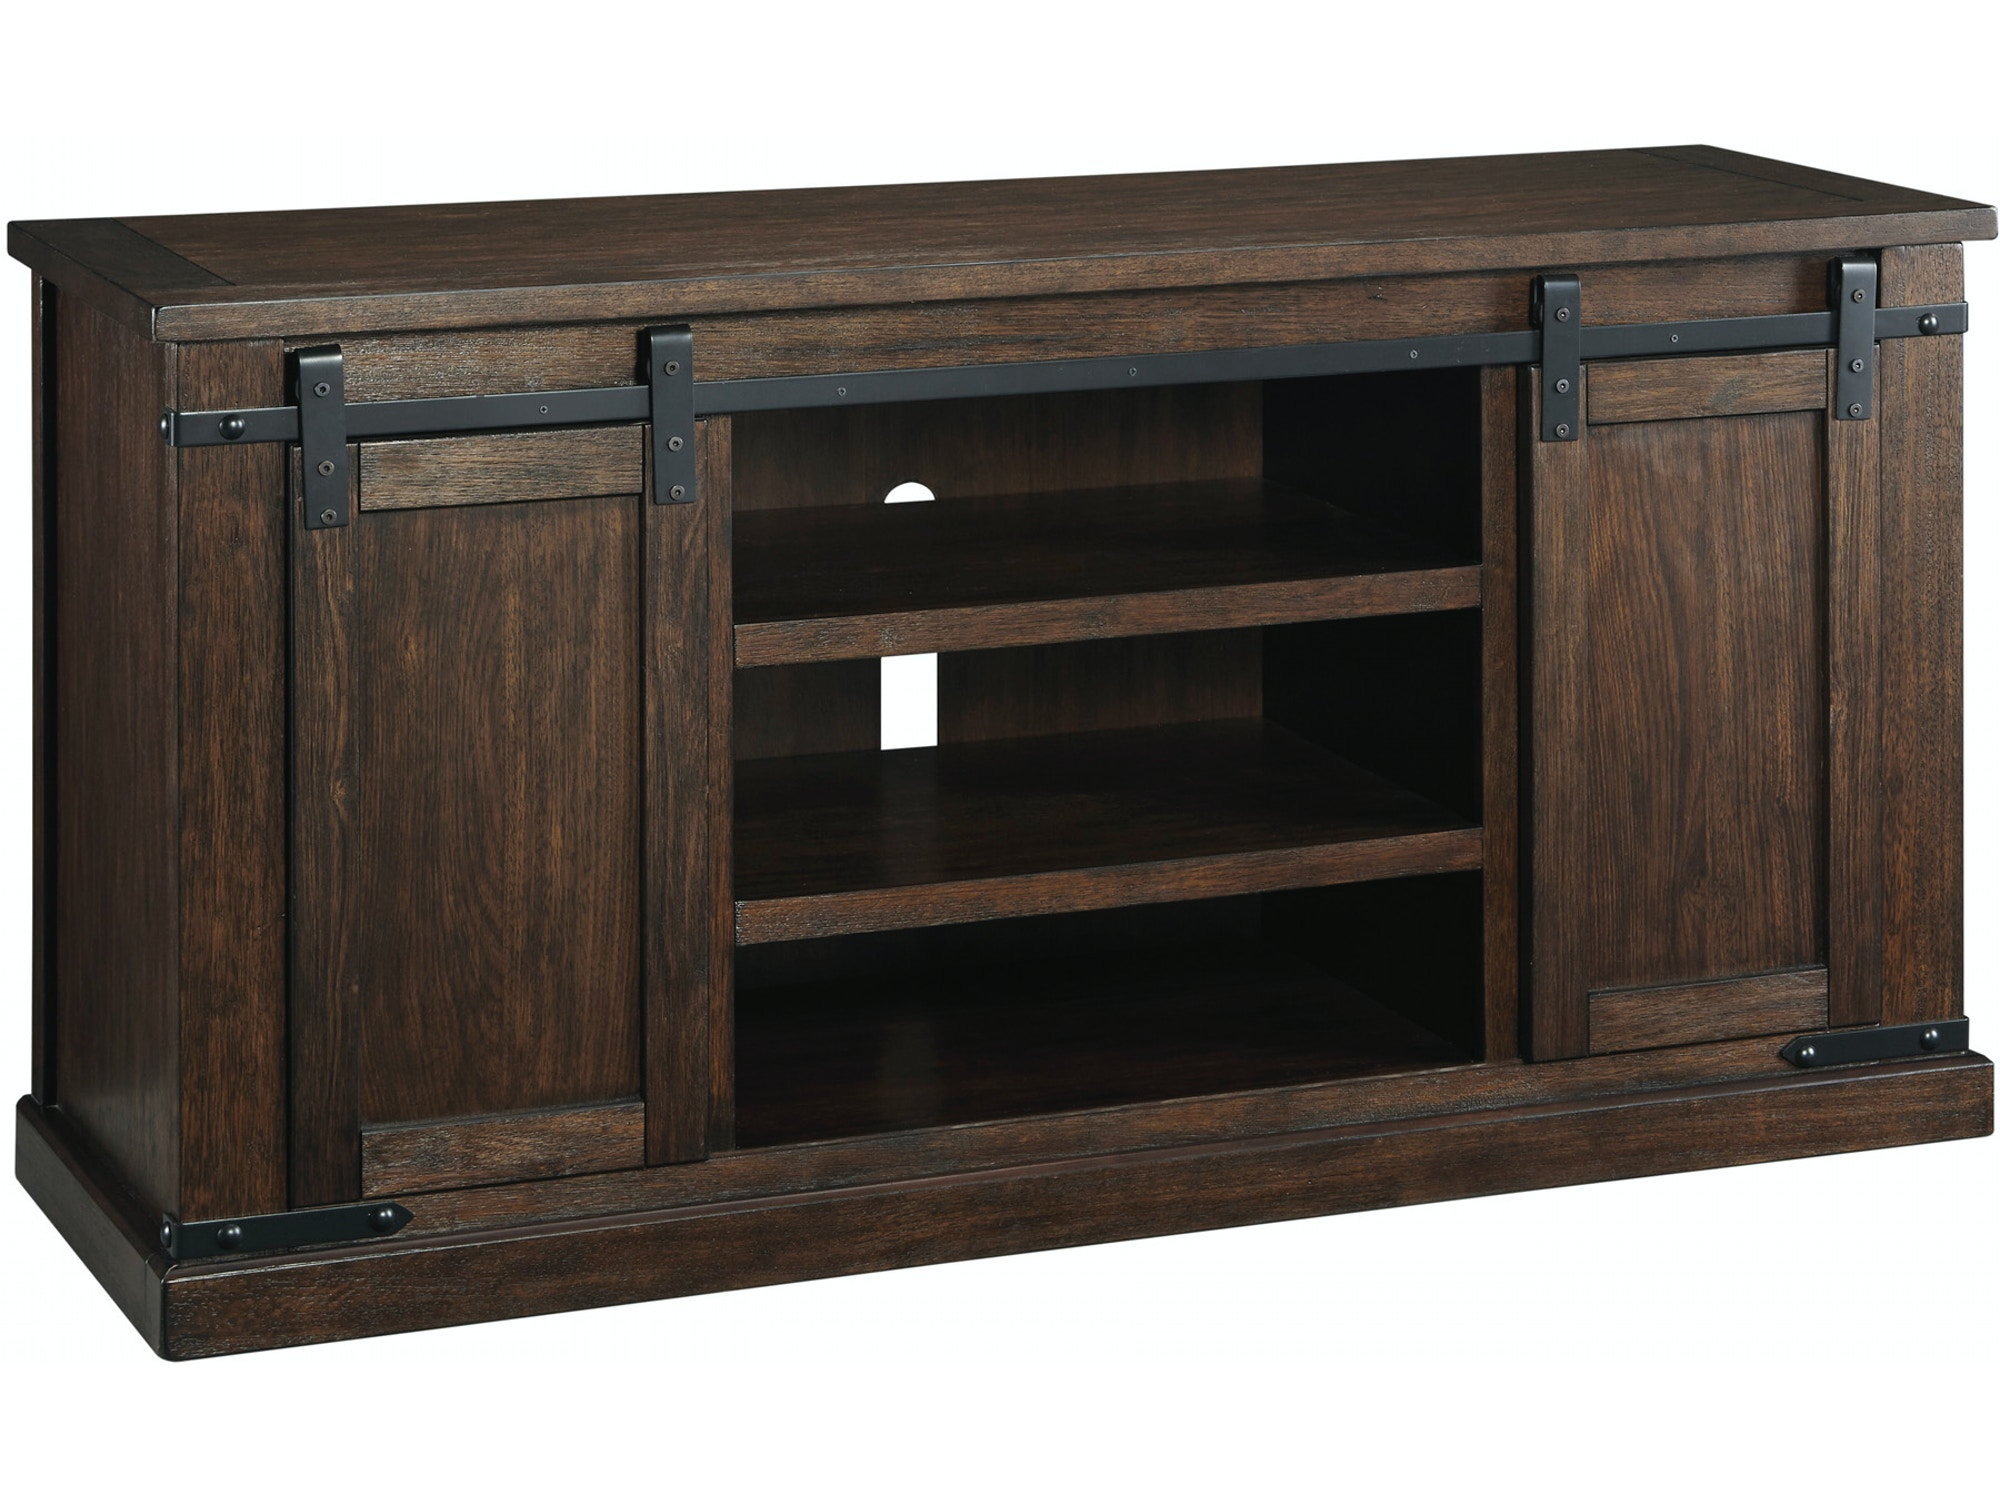 Budmore TV Stand - Large 055730